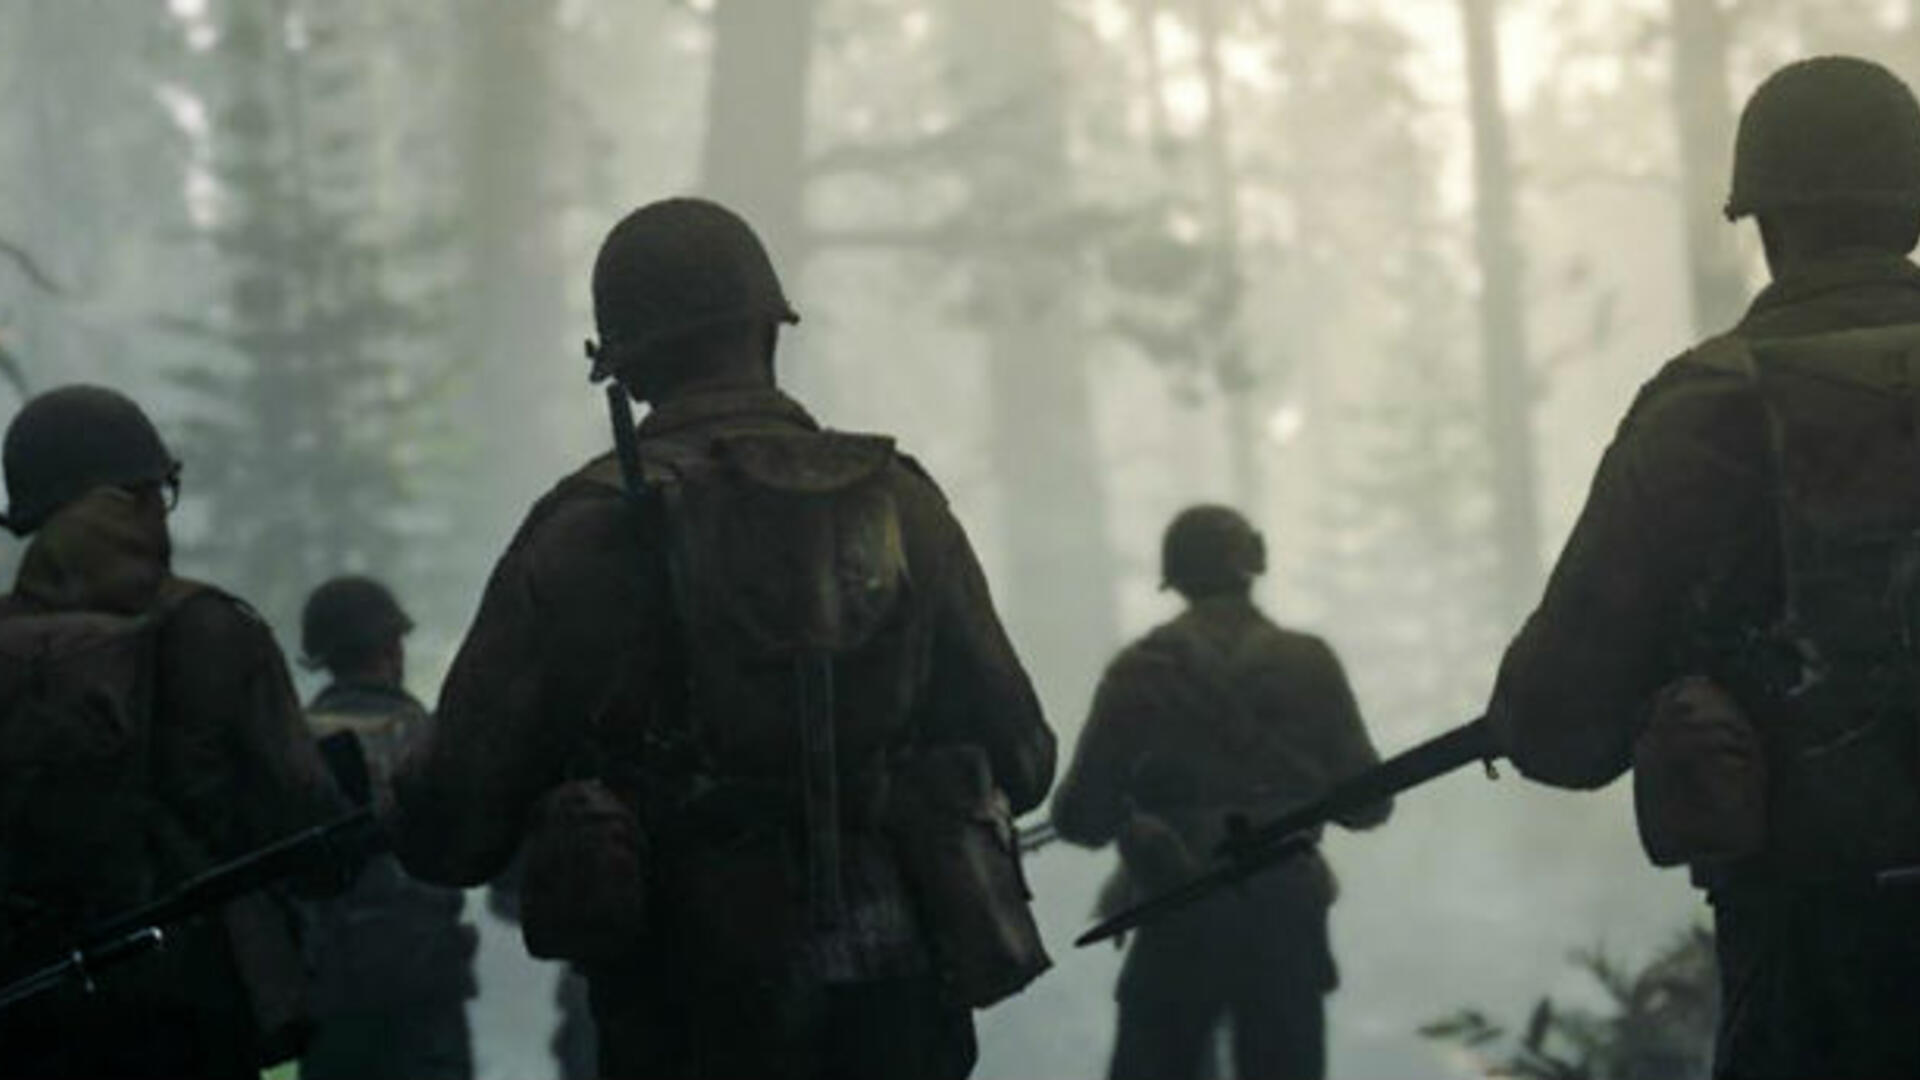 Major Call of Duty Shakeup as Sledgehammer Founders Leave the Studio